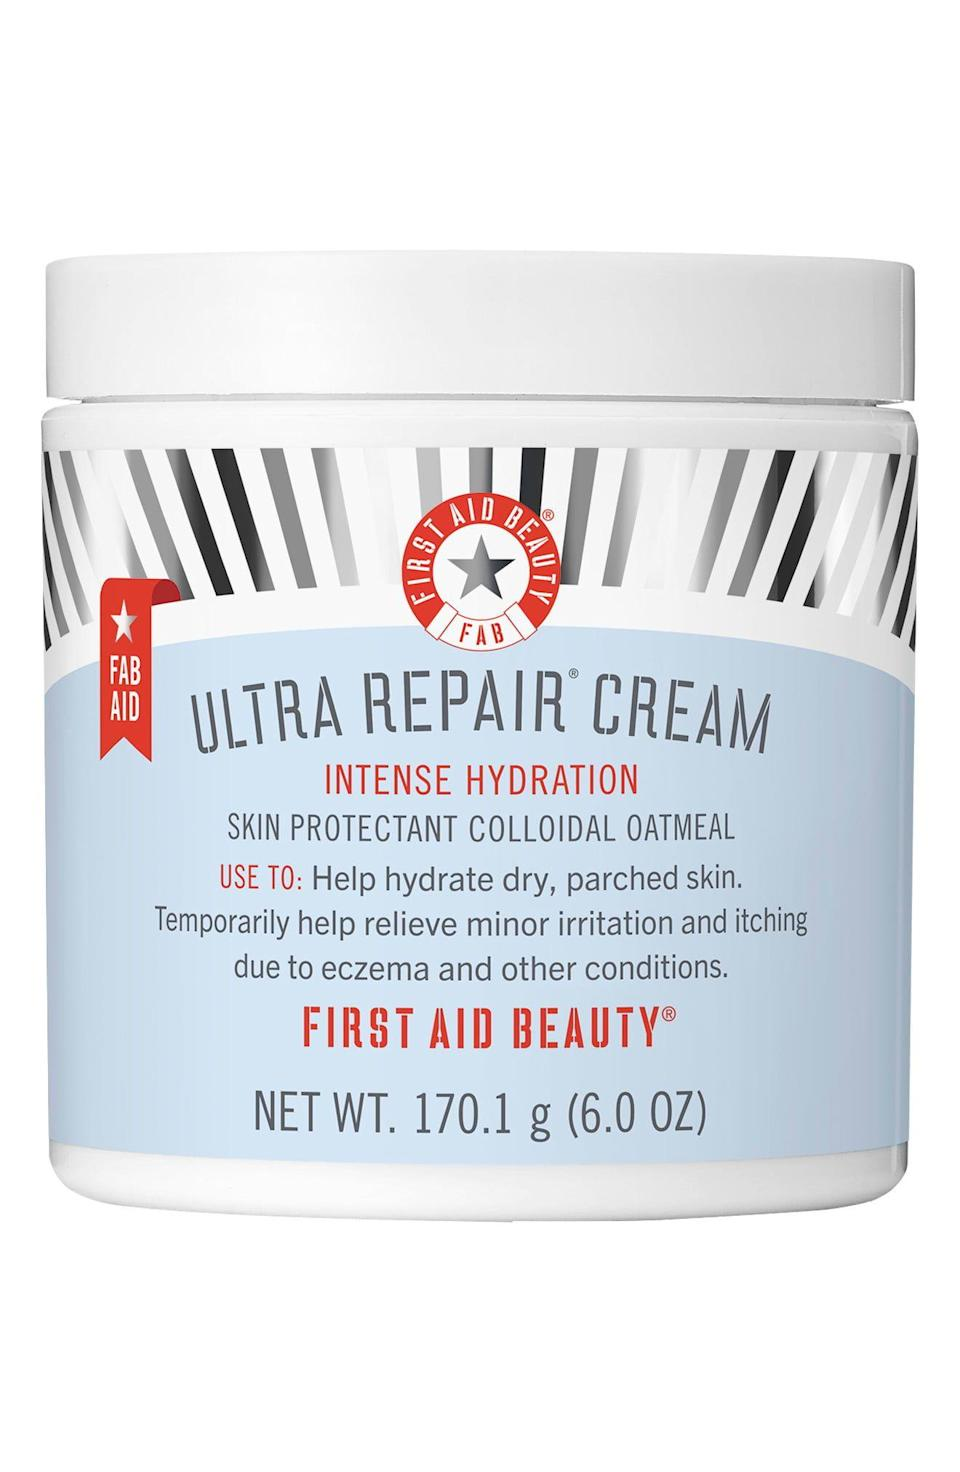 """<p><strong>FIRST AID BEAUTY</strong></p><p>nordstrom.com</p><p><a href=""""https://go.redirectingat.com?id=74968X1596630&url=https%3A%2F%2Fwww.nordstrom.com%2Fs%2Ffirst-aid-beauty-ultra-repair-cream-intense-hydration-face-body-moisturizer%2F5443759&sref=https%3A%2F%2Fwww.elle.com%2Fbeauty%2Fg35951728%2Fnordstrom-beauty-sale%2F"""" rel=""""nofollow noopener"""" target=""""_blank"""" data-ylk=""""slk:Shop Now"""" class=""""link rapid-noclick-resp"""">Shop Now</a></p><p><strong><del>$16 </del>$13.60 (15% off)</strong></p>"""